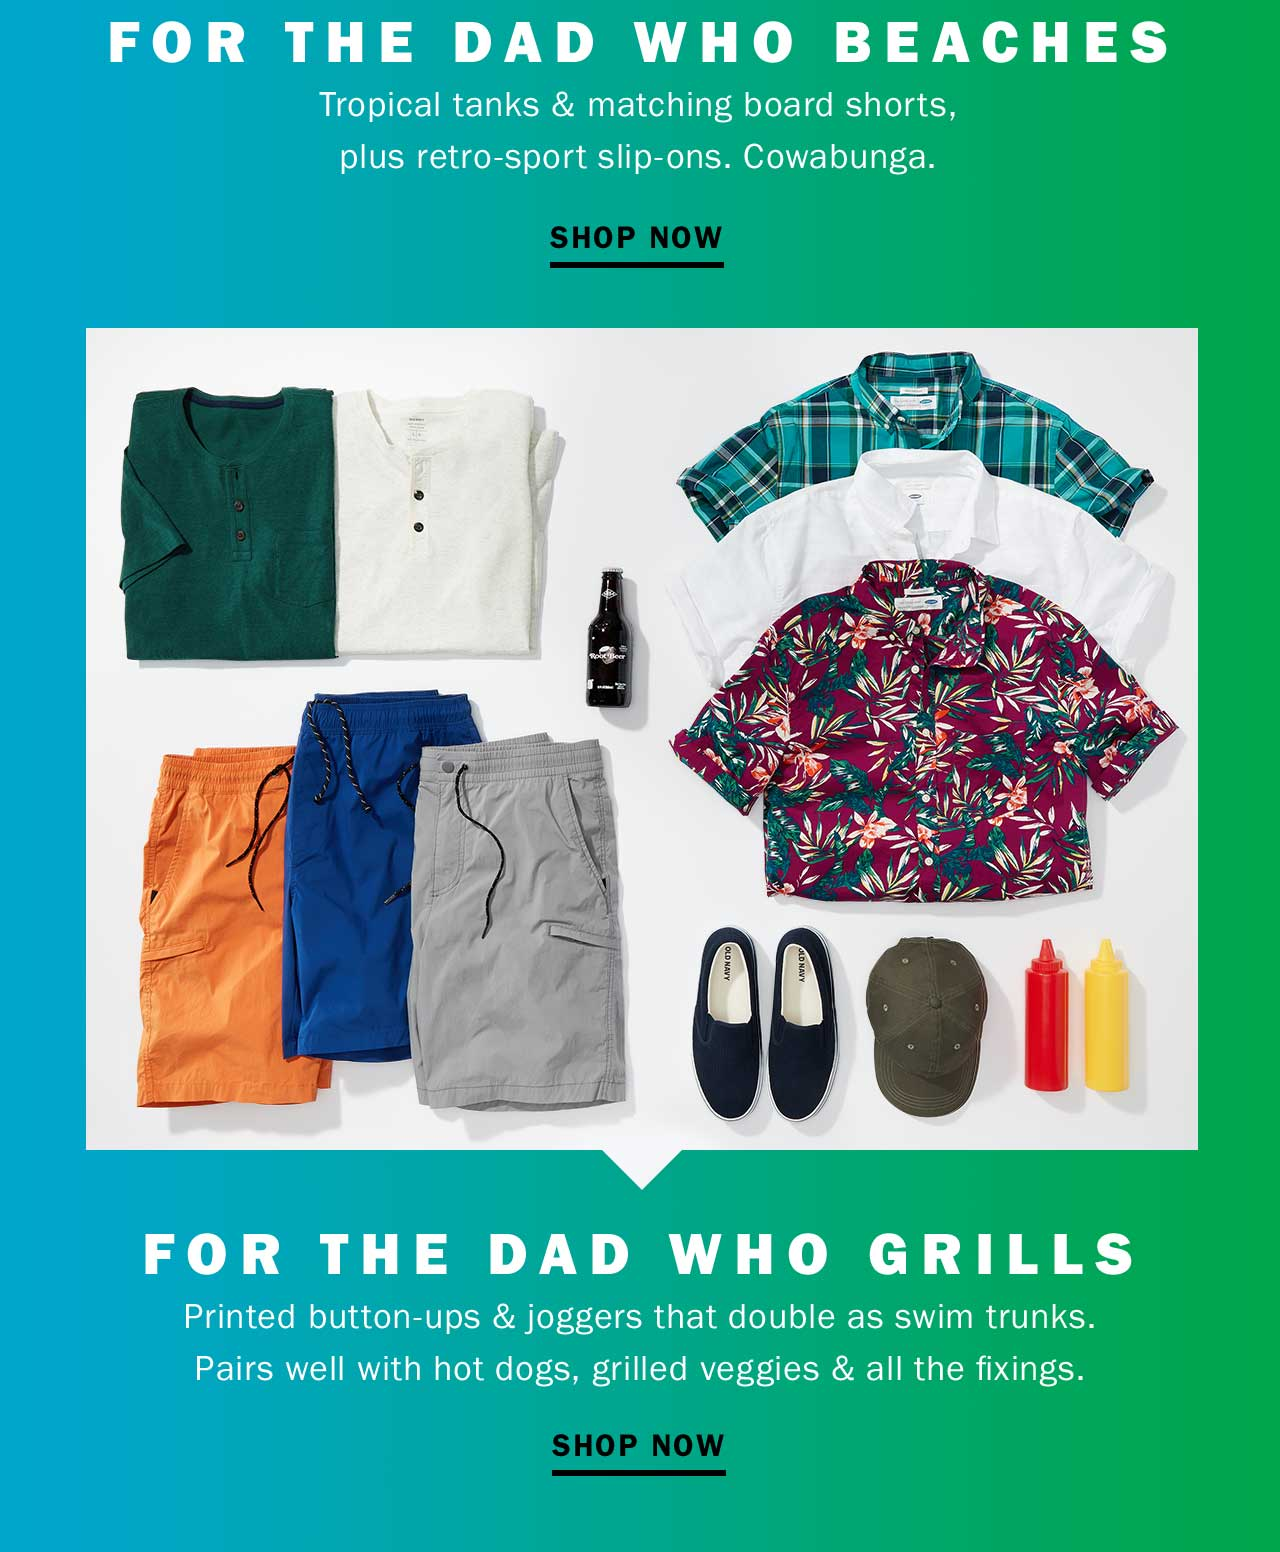 FOR THE DAD WHO BEACHES | SHOP NOW